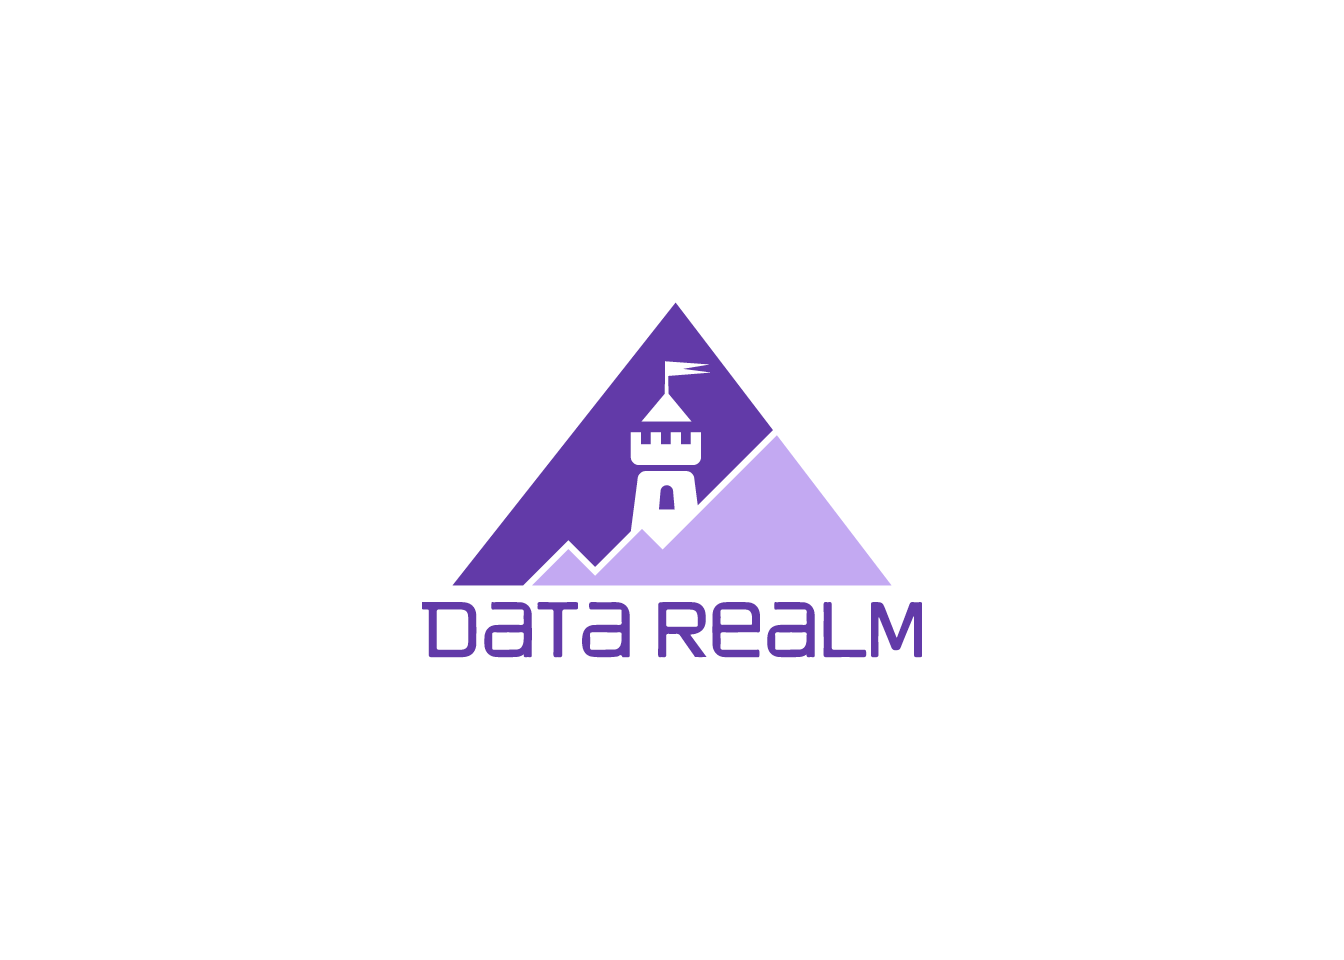 Data Realm